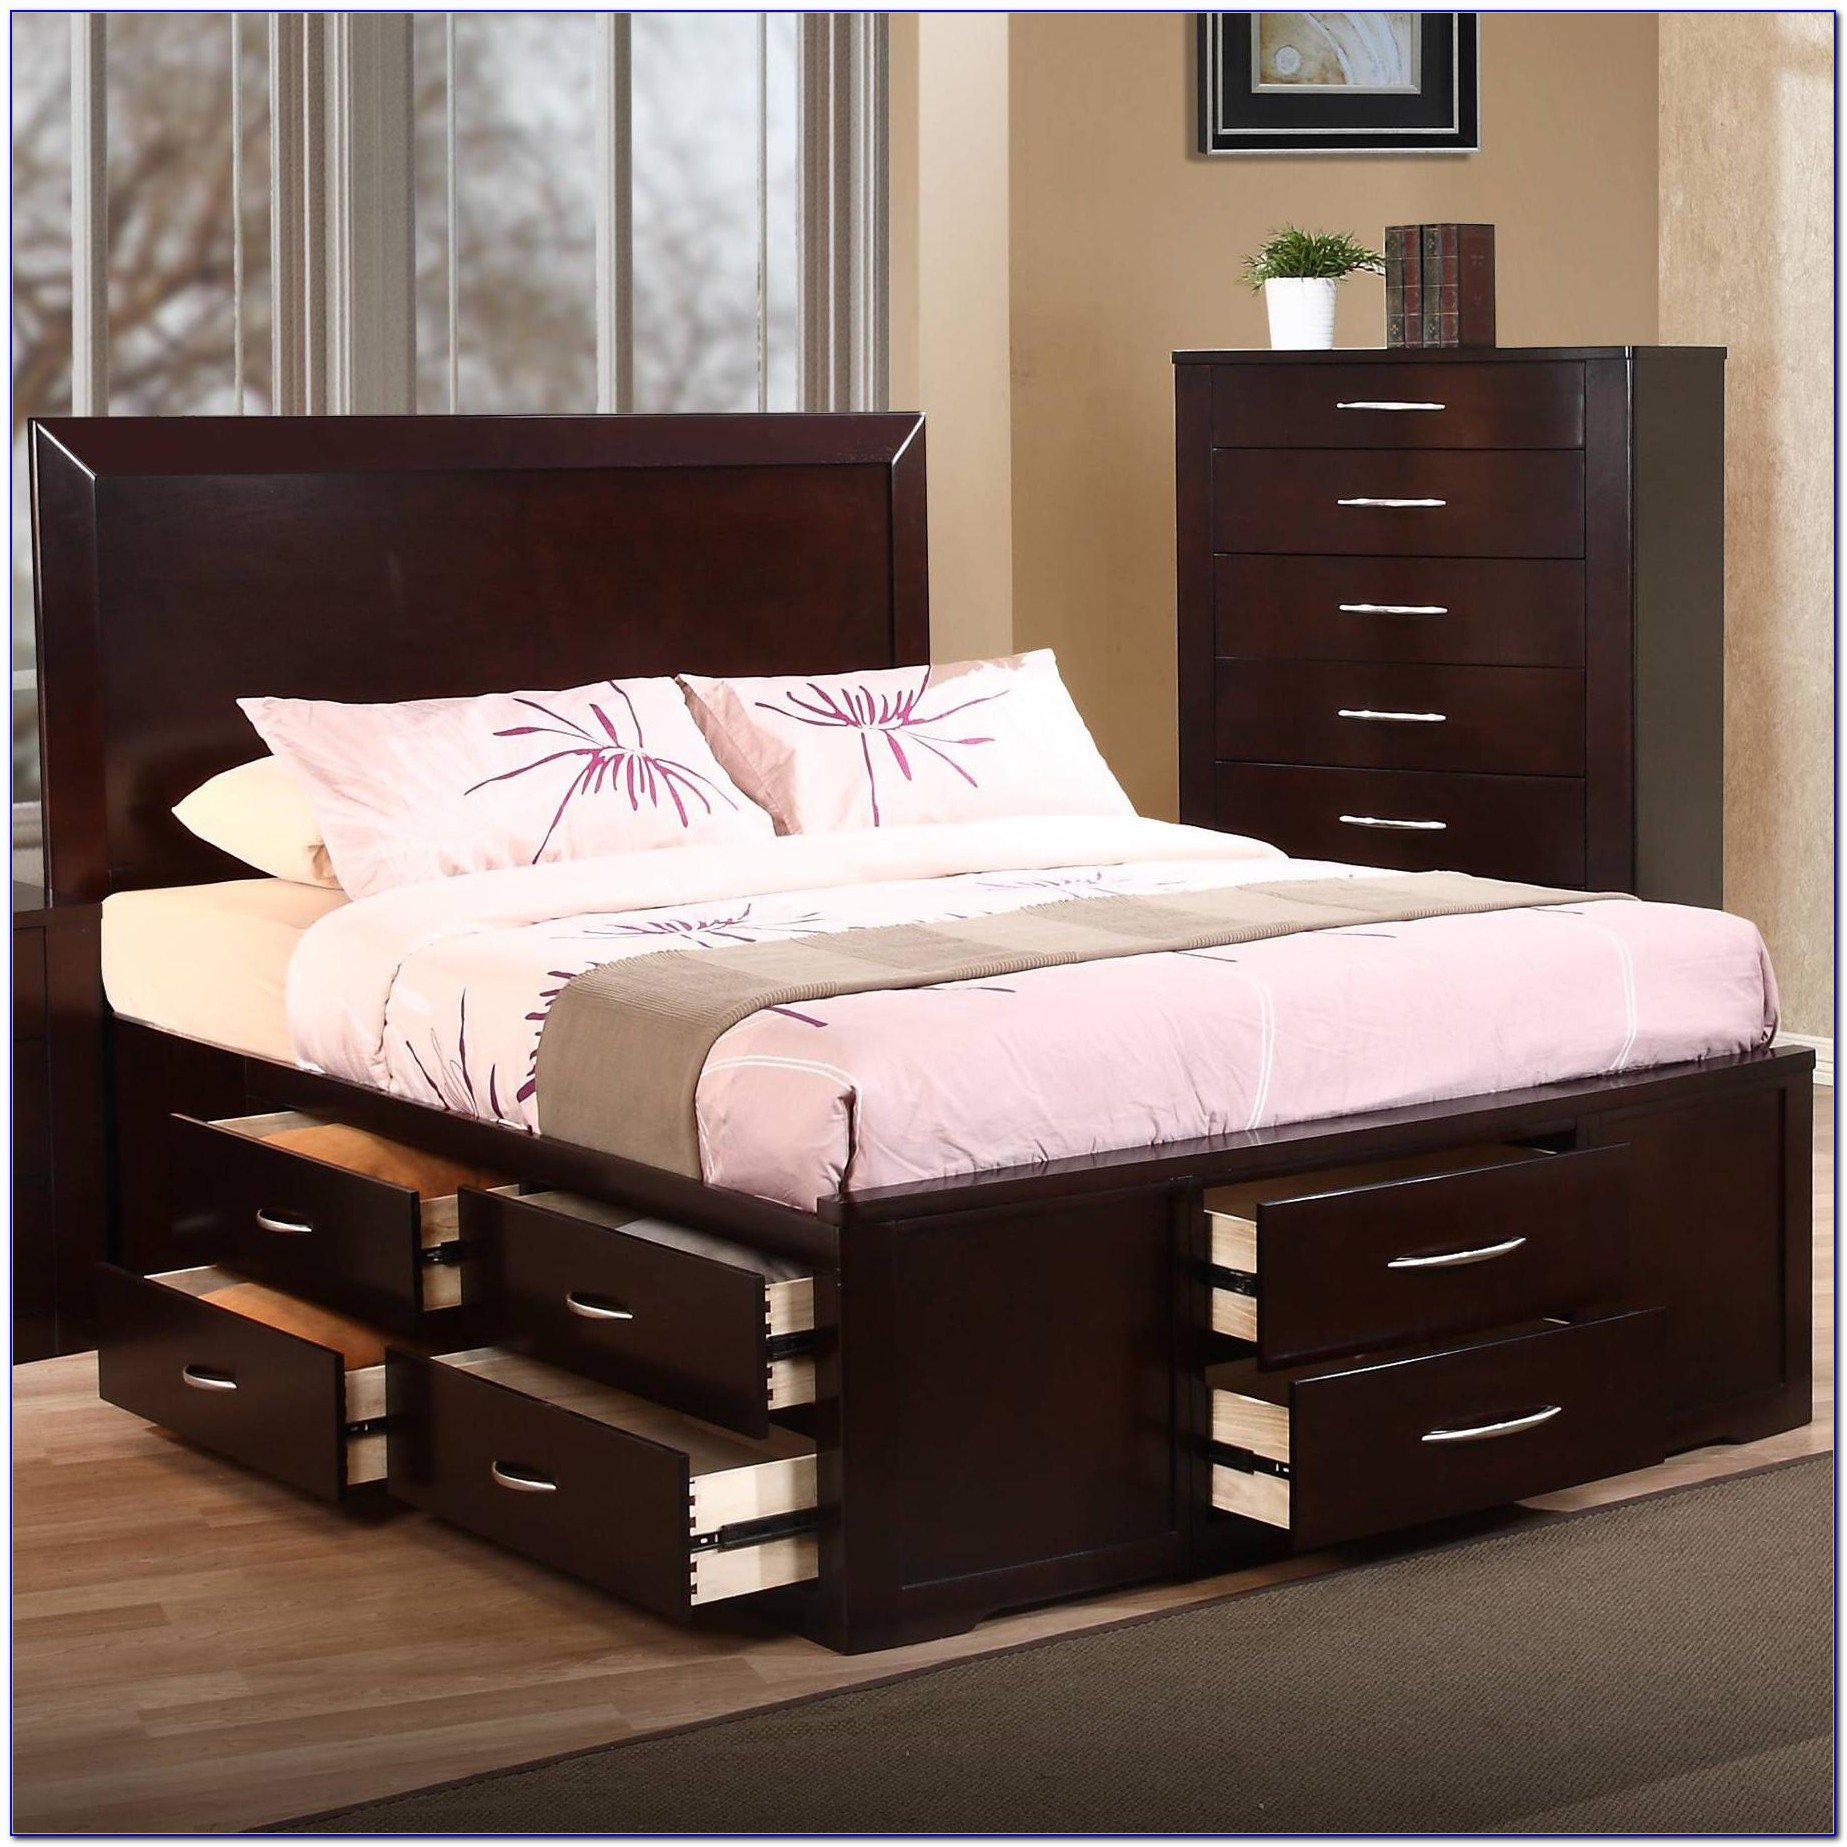 Queen Size Bed Frame With Storage Singapore